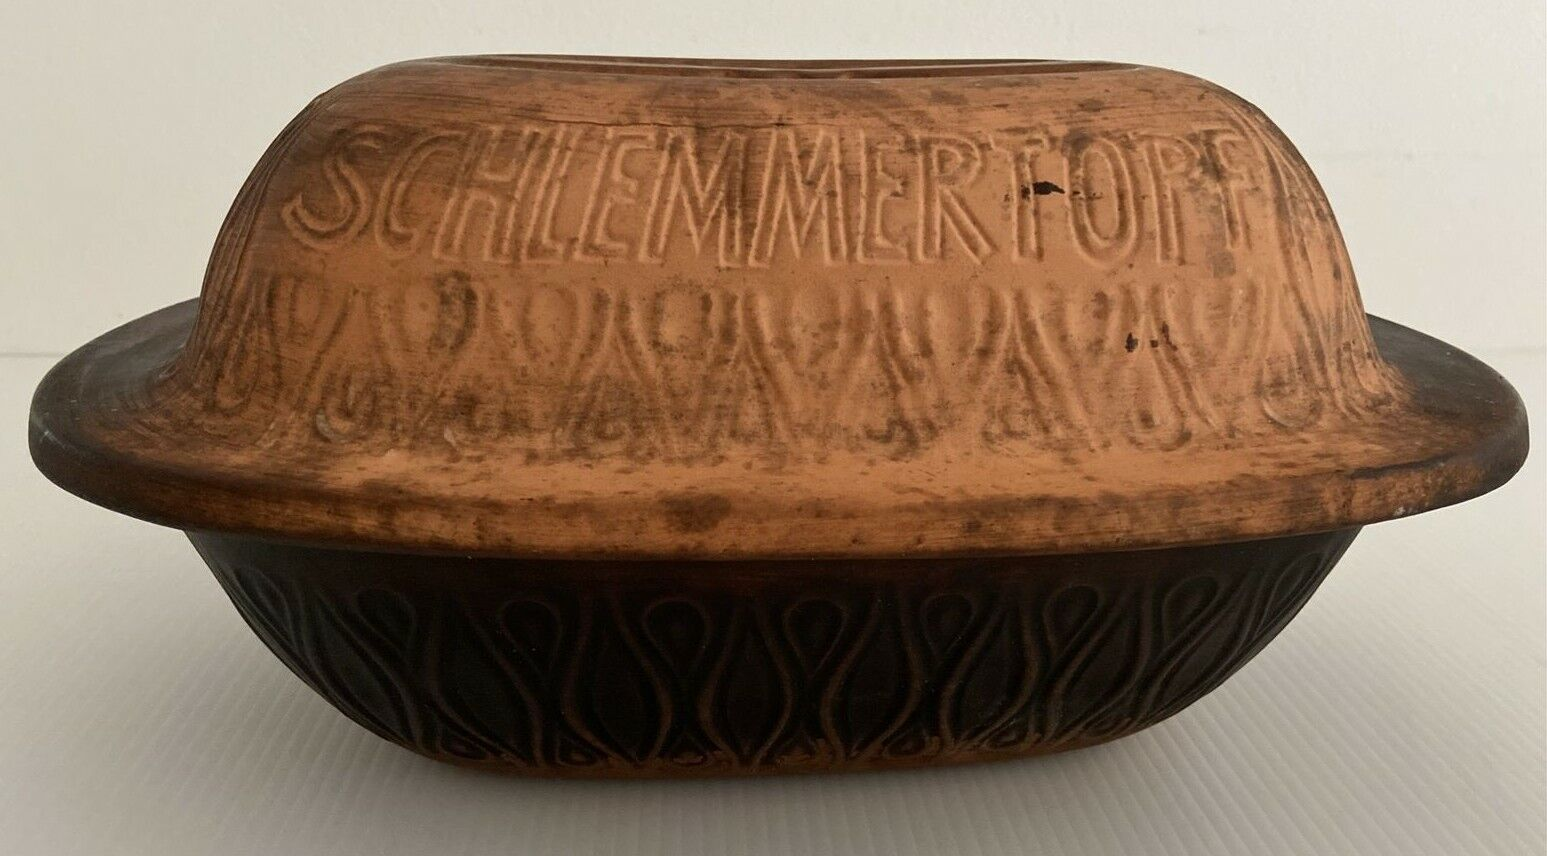 Image 1 - Clay Oven Roaster Schlemmertopf 832 Scheurich West Germany Lidded Tray Dish GUC